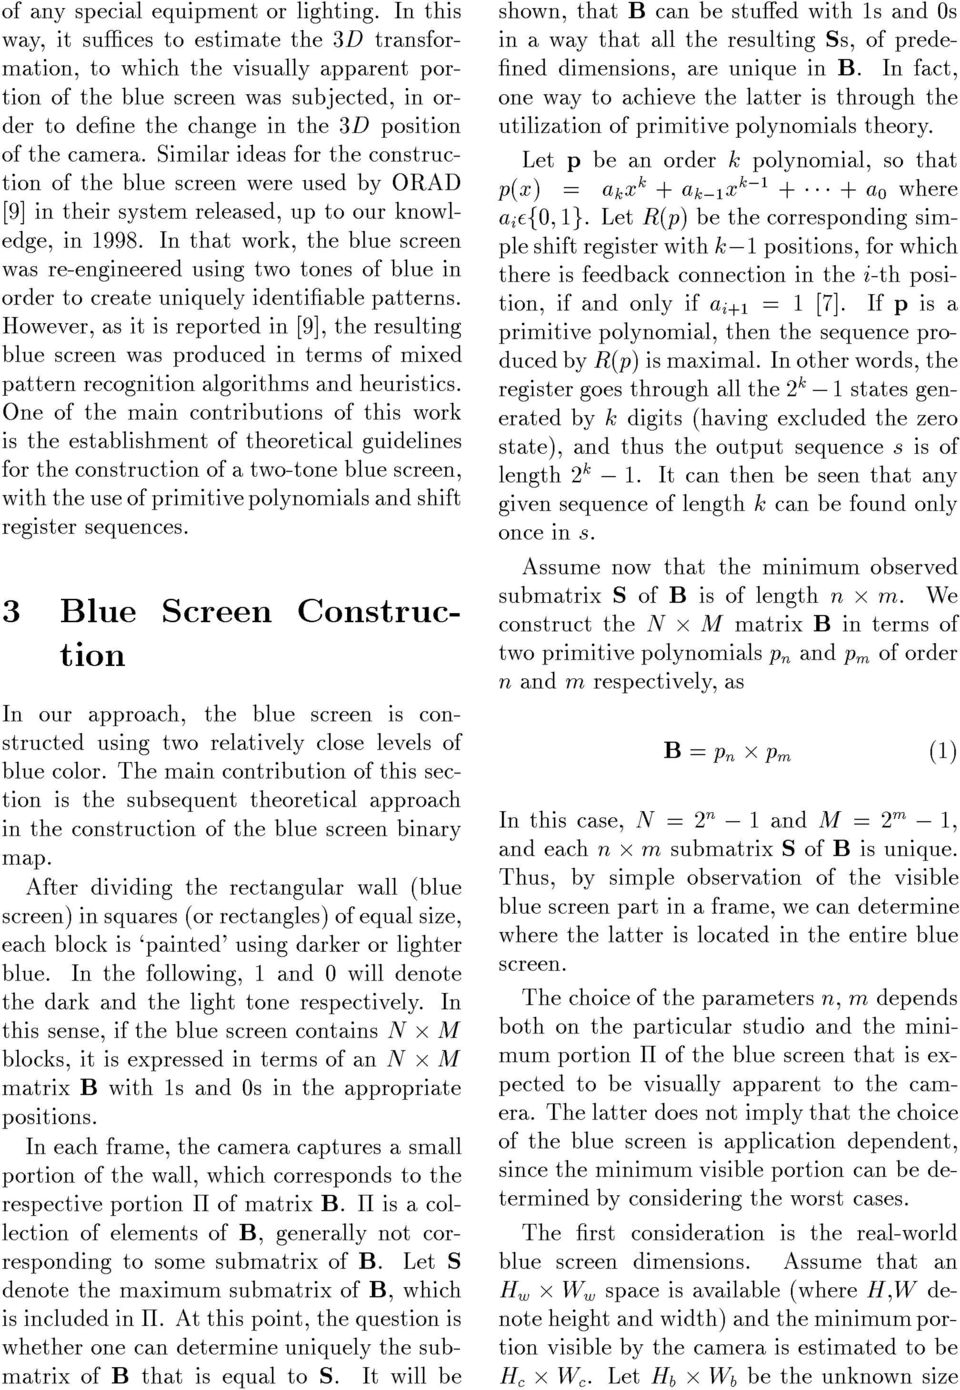 Similar ideas for the construction of the blue screen were used by ORAD [9] in their system released, up to our knowledge, in 1998.